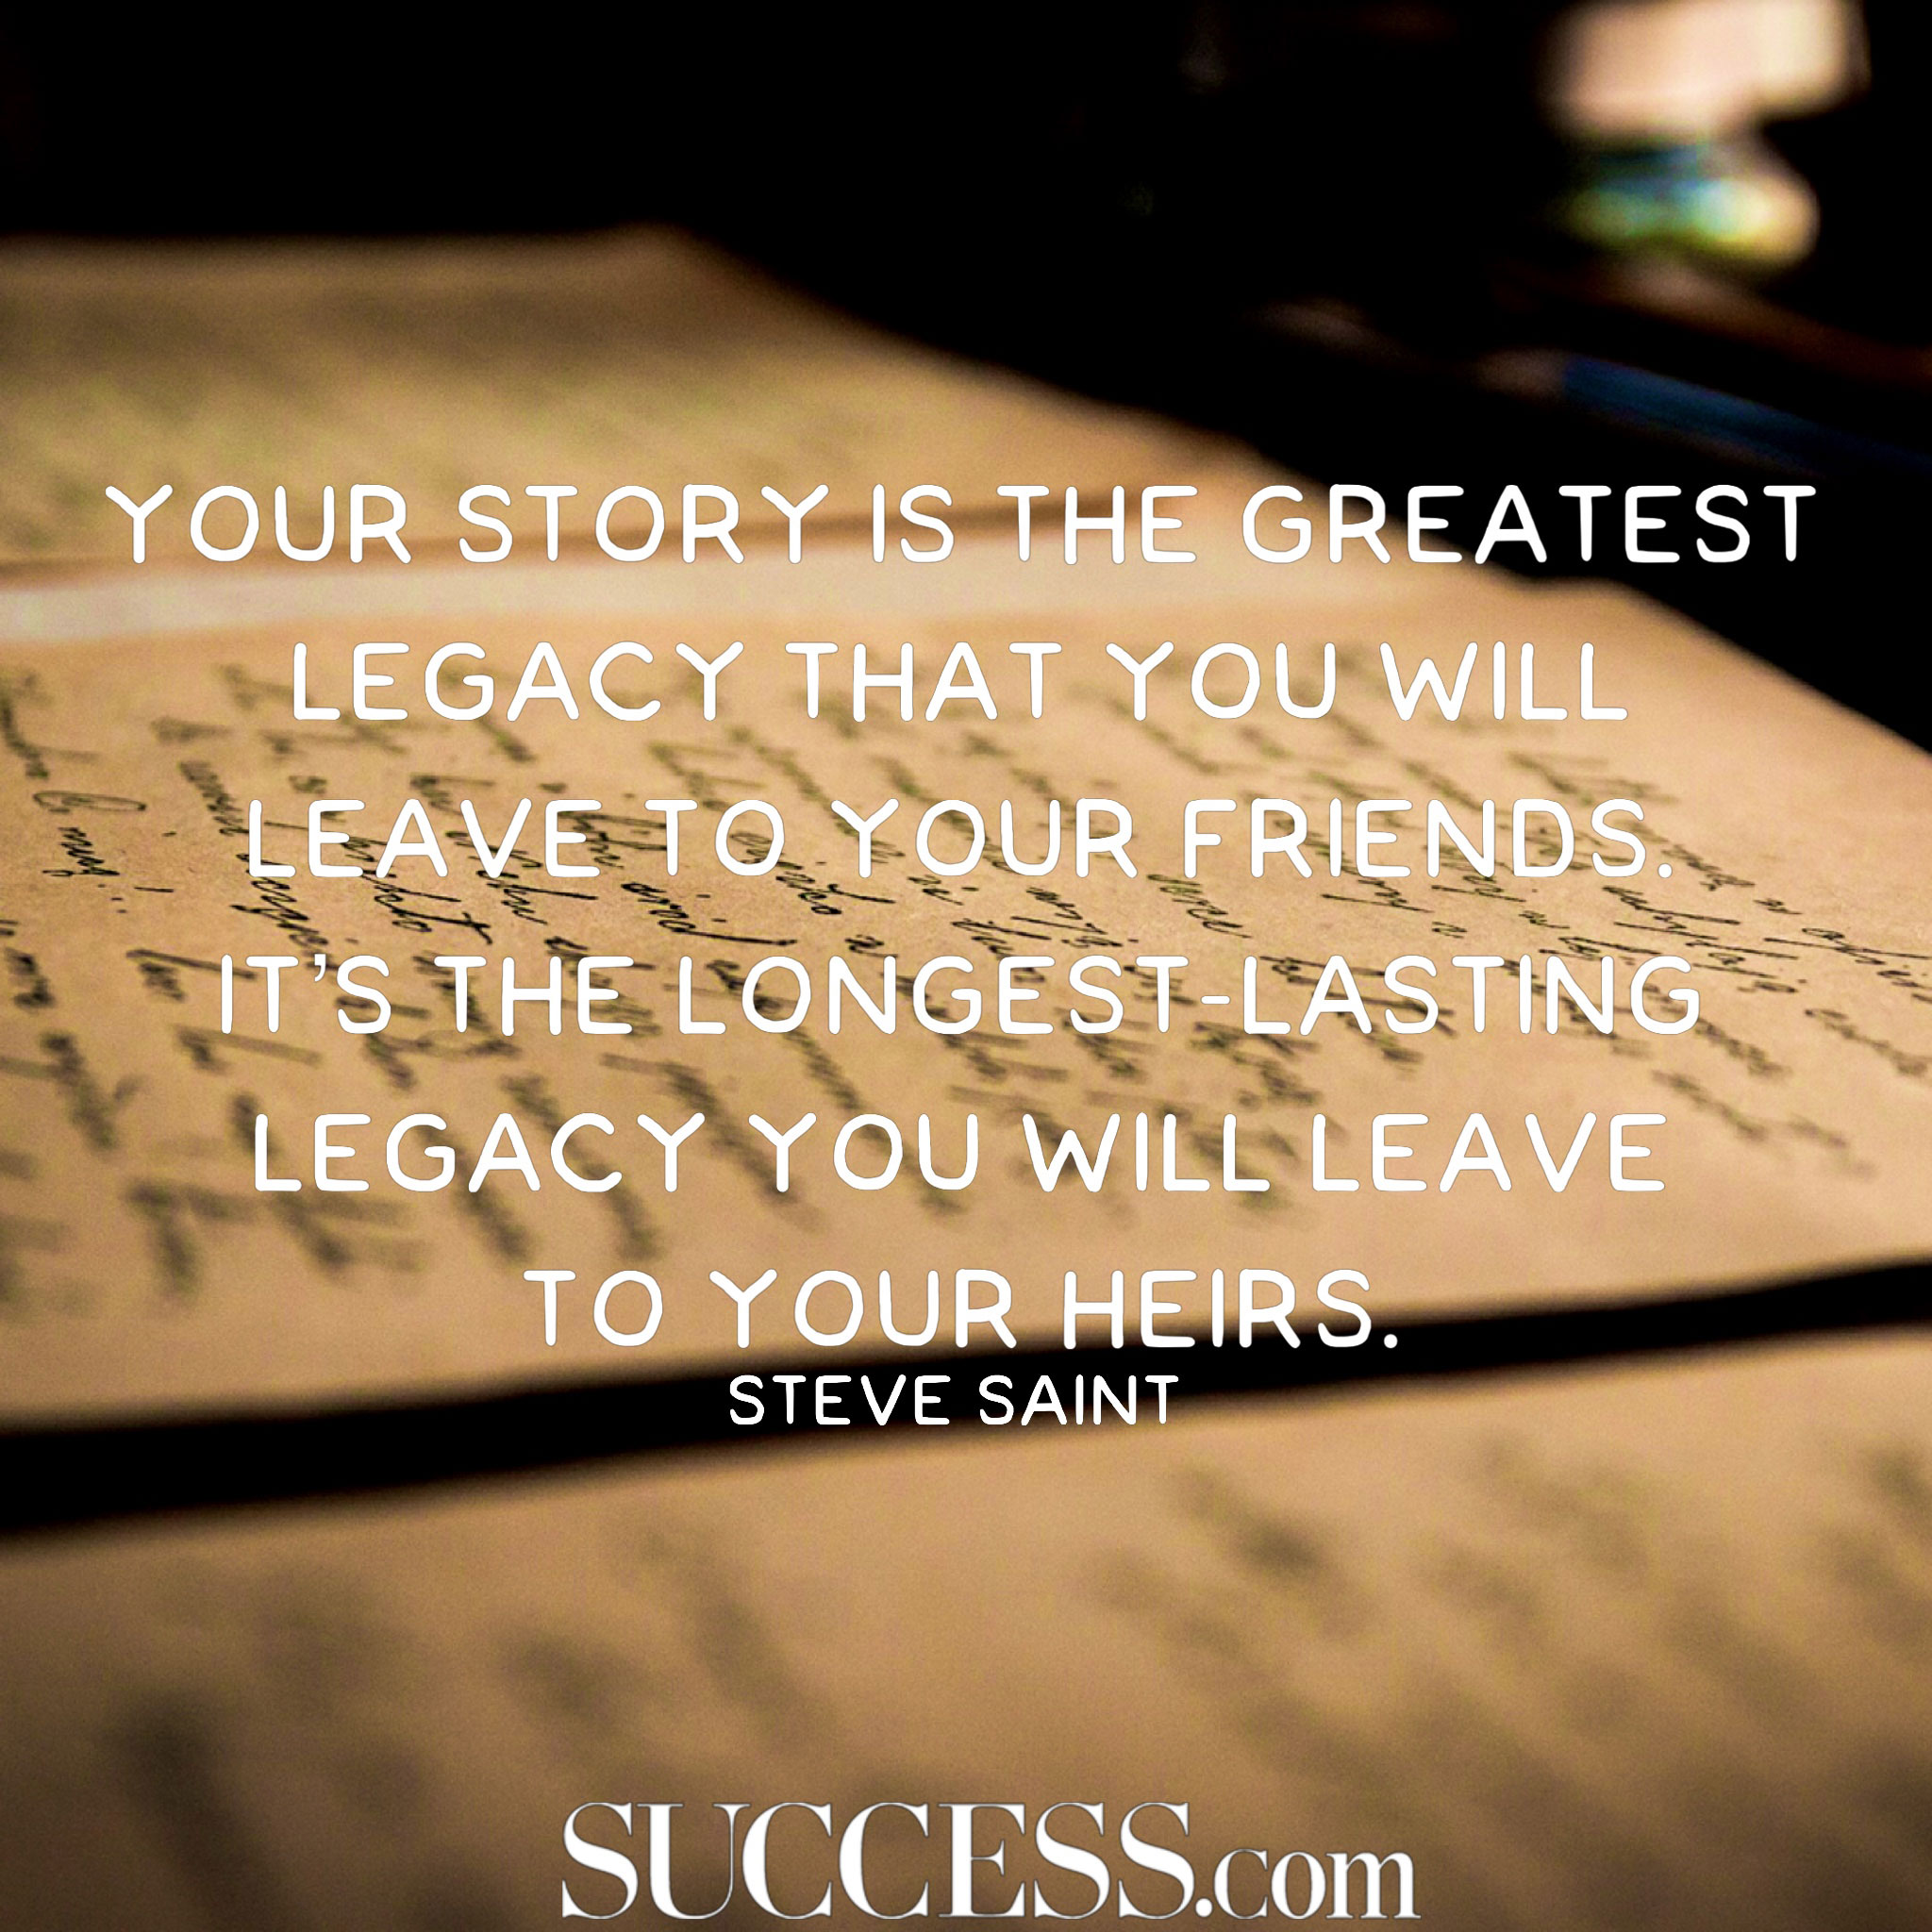 Best Motivational Quotes For Lefties: 11 Quotes About Leaving A Legacy